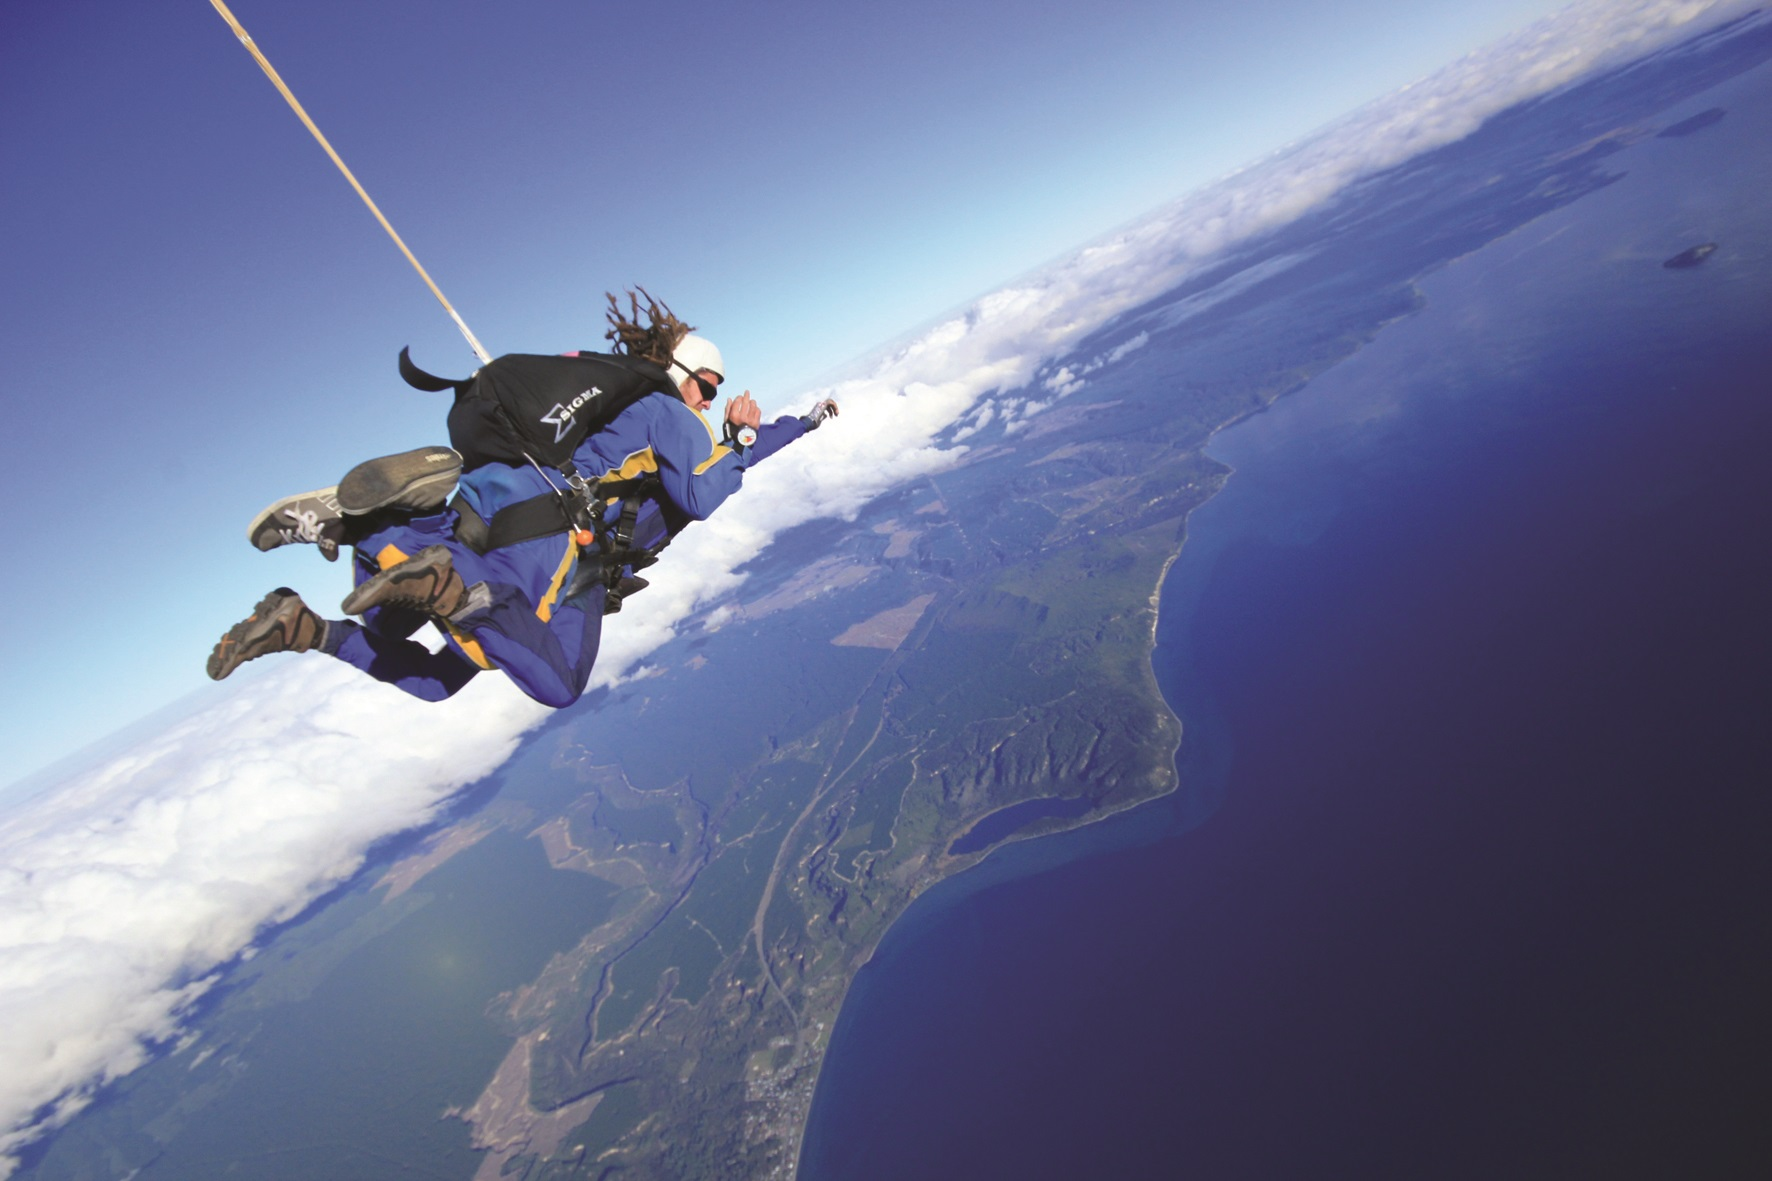 explore NZ Tandem free fall sky diving with 15,000 feet at Lake Taupo2